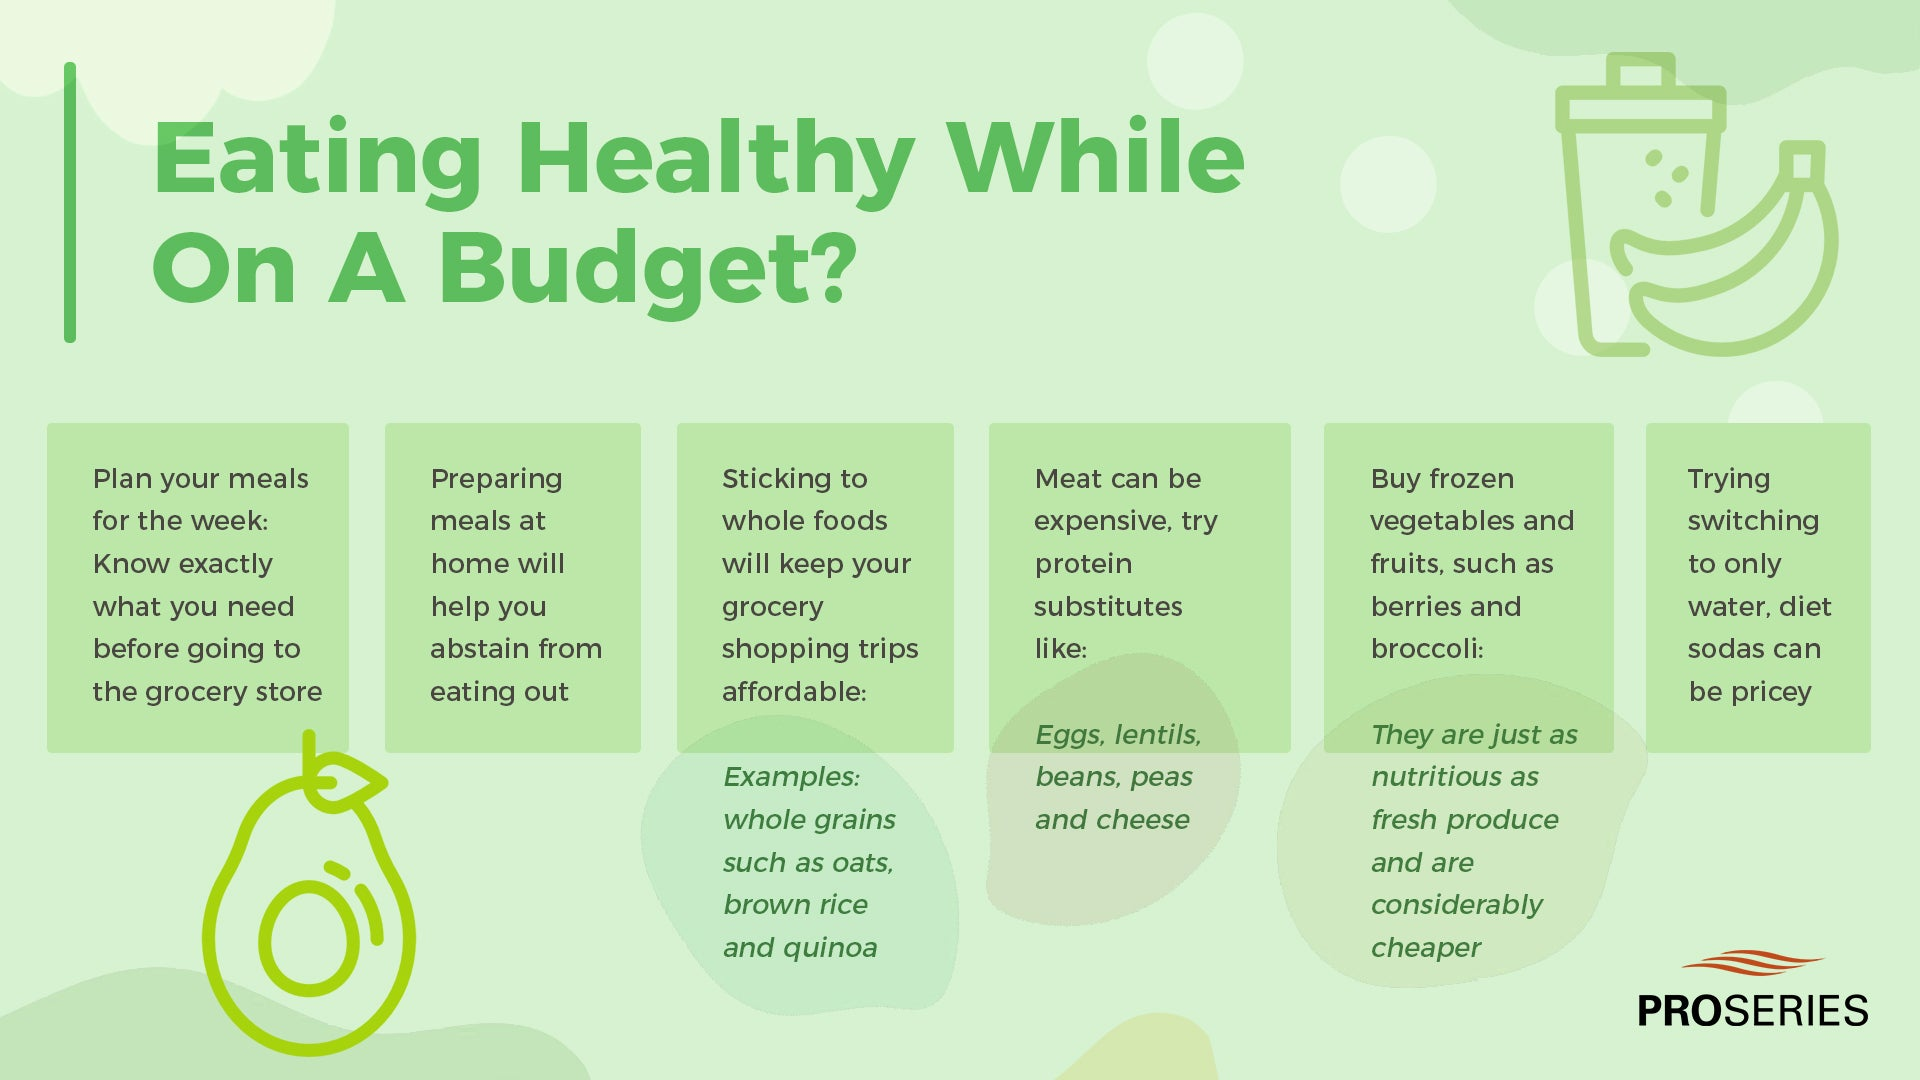 Eating Healthy While On A Budget? -Plan your meals for the week: This will help you know exactly what you need before going to the grocery store -Preparing meals at home will help you abstain from eating out -Sticking to whole foods will keep your grocery shopping trips -Examples: whole grains such as oats, brown rice, and quinoa -Meat can be expensive, try protein substitutes like: -Eggs, lentils, beans, peas and cheese -Buy frozen vegetables and fruits, such as berries and -They are just as nutritious as fresh produce and considerably cheaper -Trying switching to only water, diet sodas can be pricey